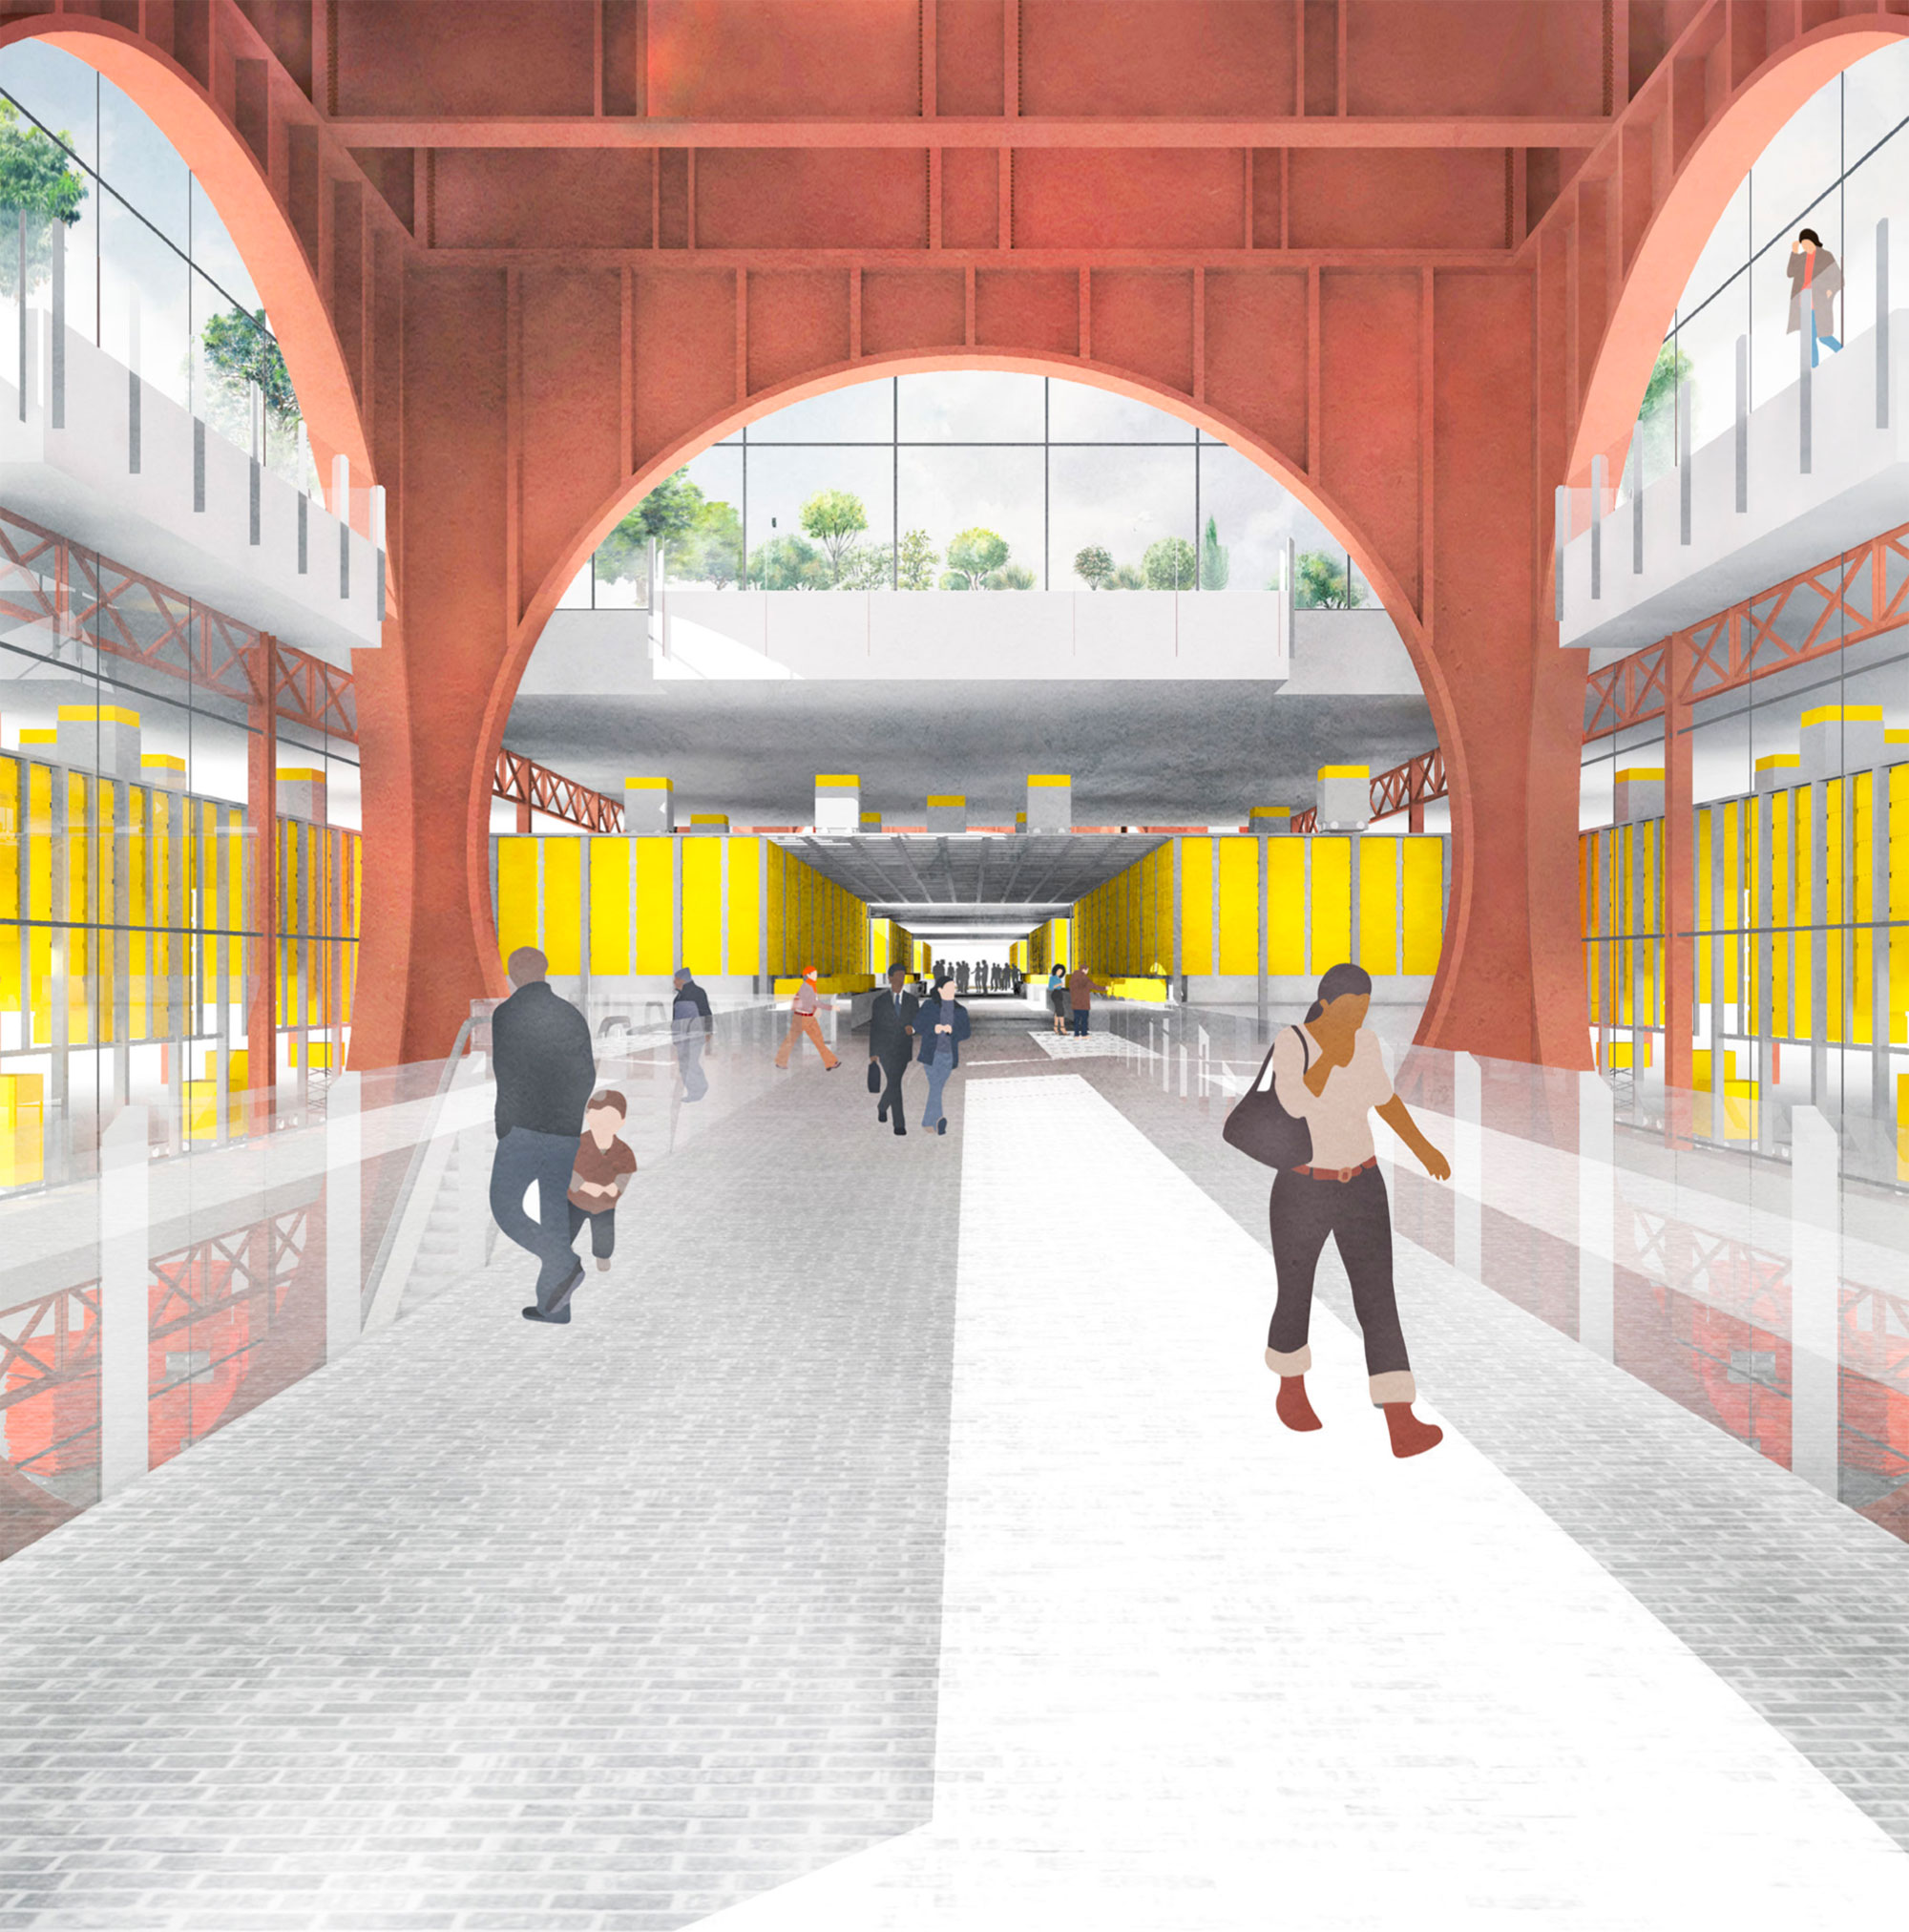 A public route through the consolidation centre reveals its infrastructure and provides access to workspaces, a new tube station and the roof park. Groceries and parcels can be picked up from self service points along the route.